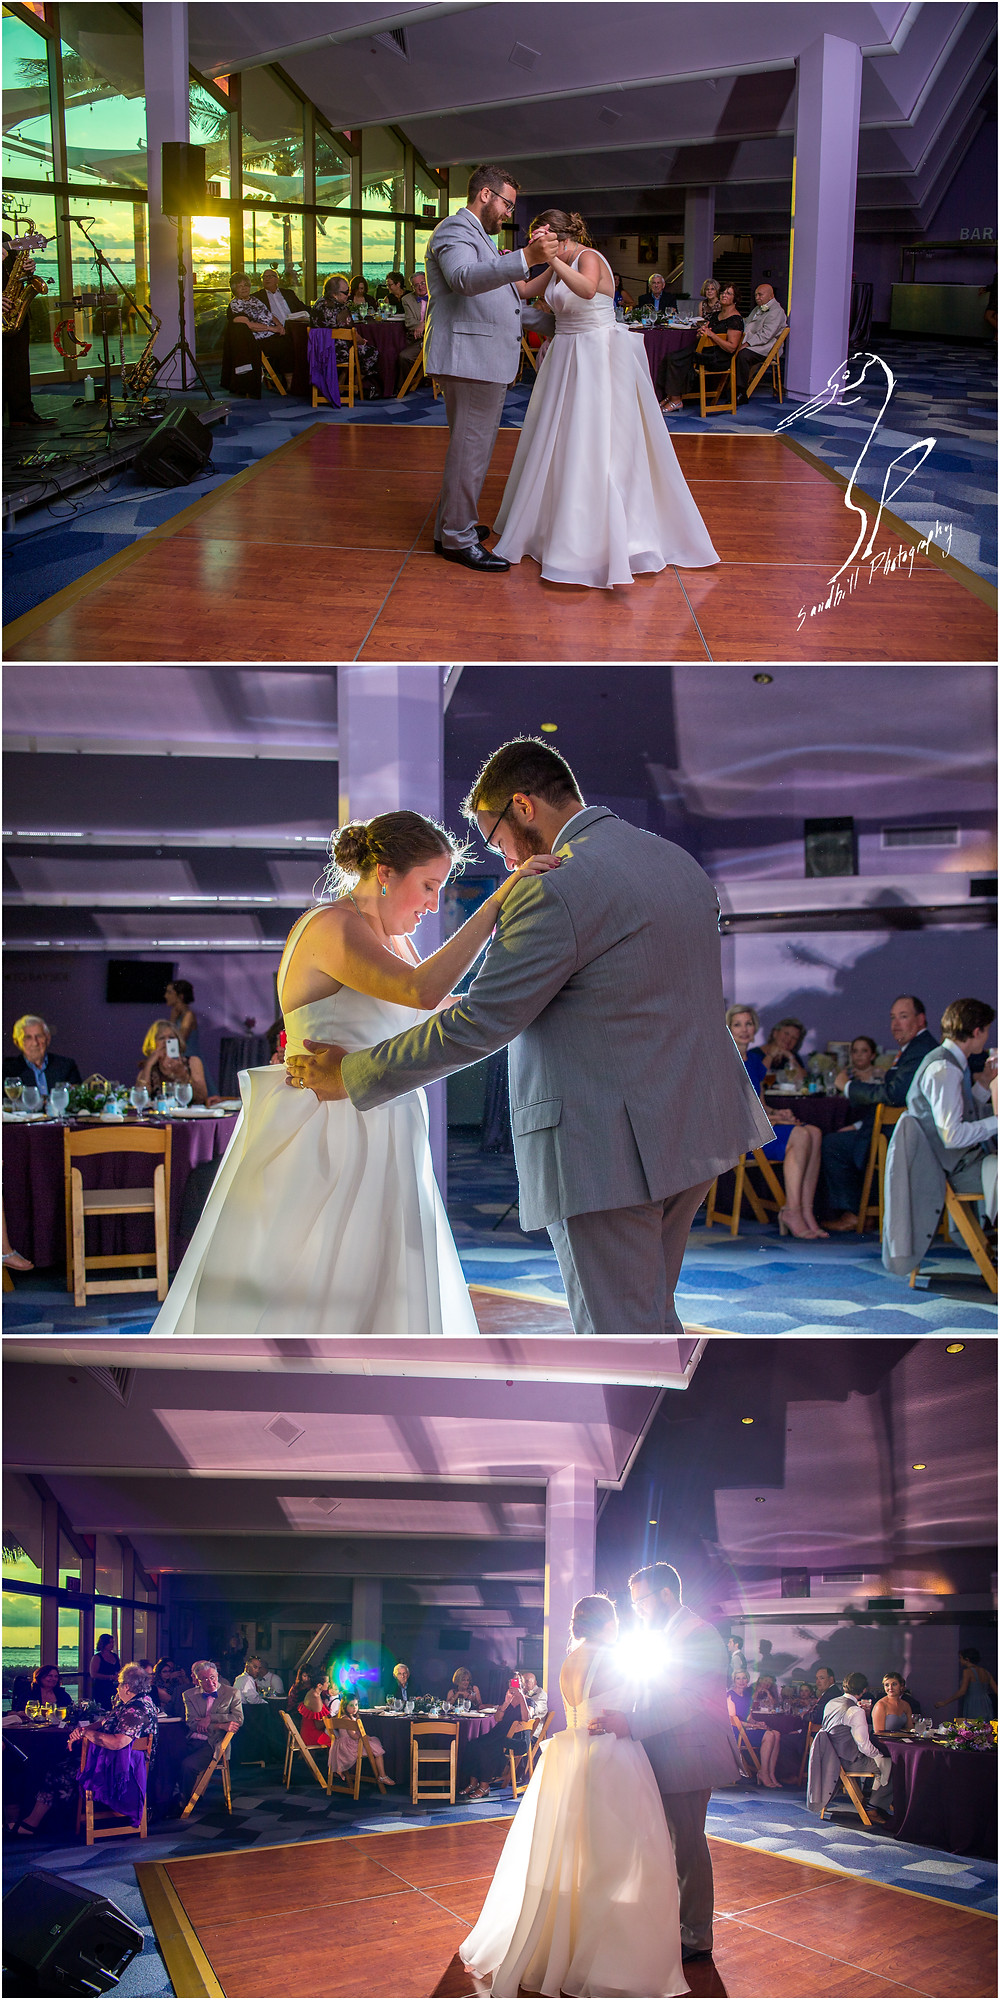 Van Wezel Wedding Photography, Reception, The bride and groom share their first dance as the sun sets over Sarasota Bay